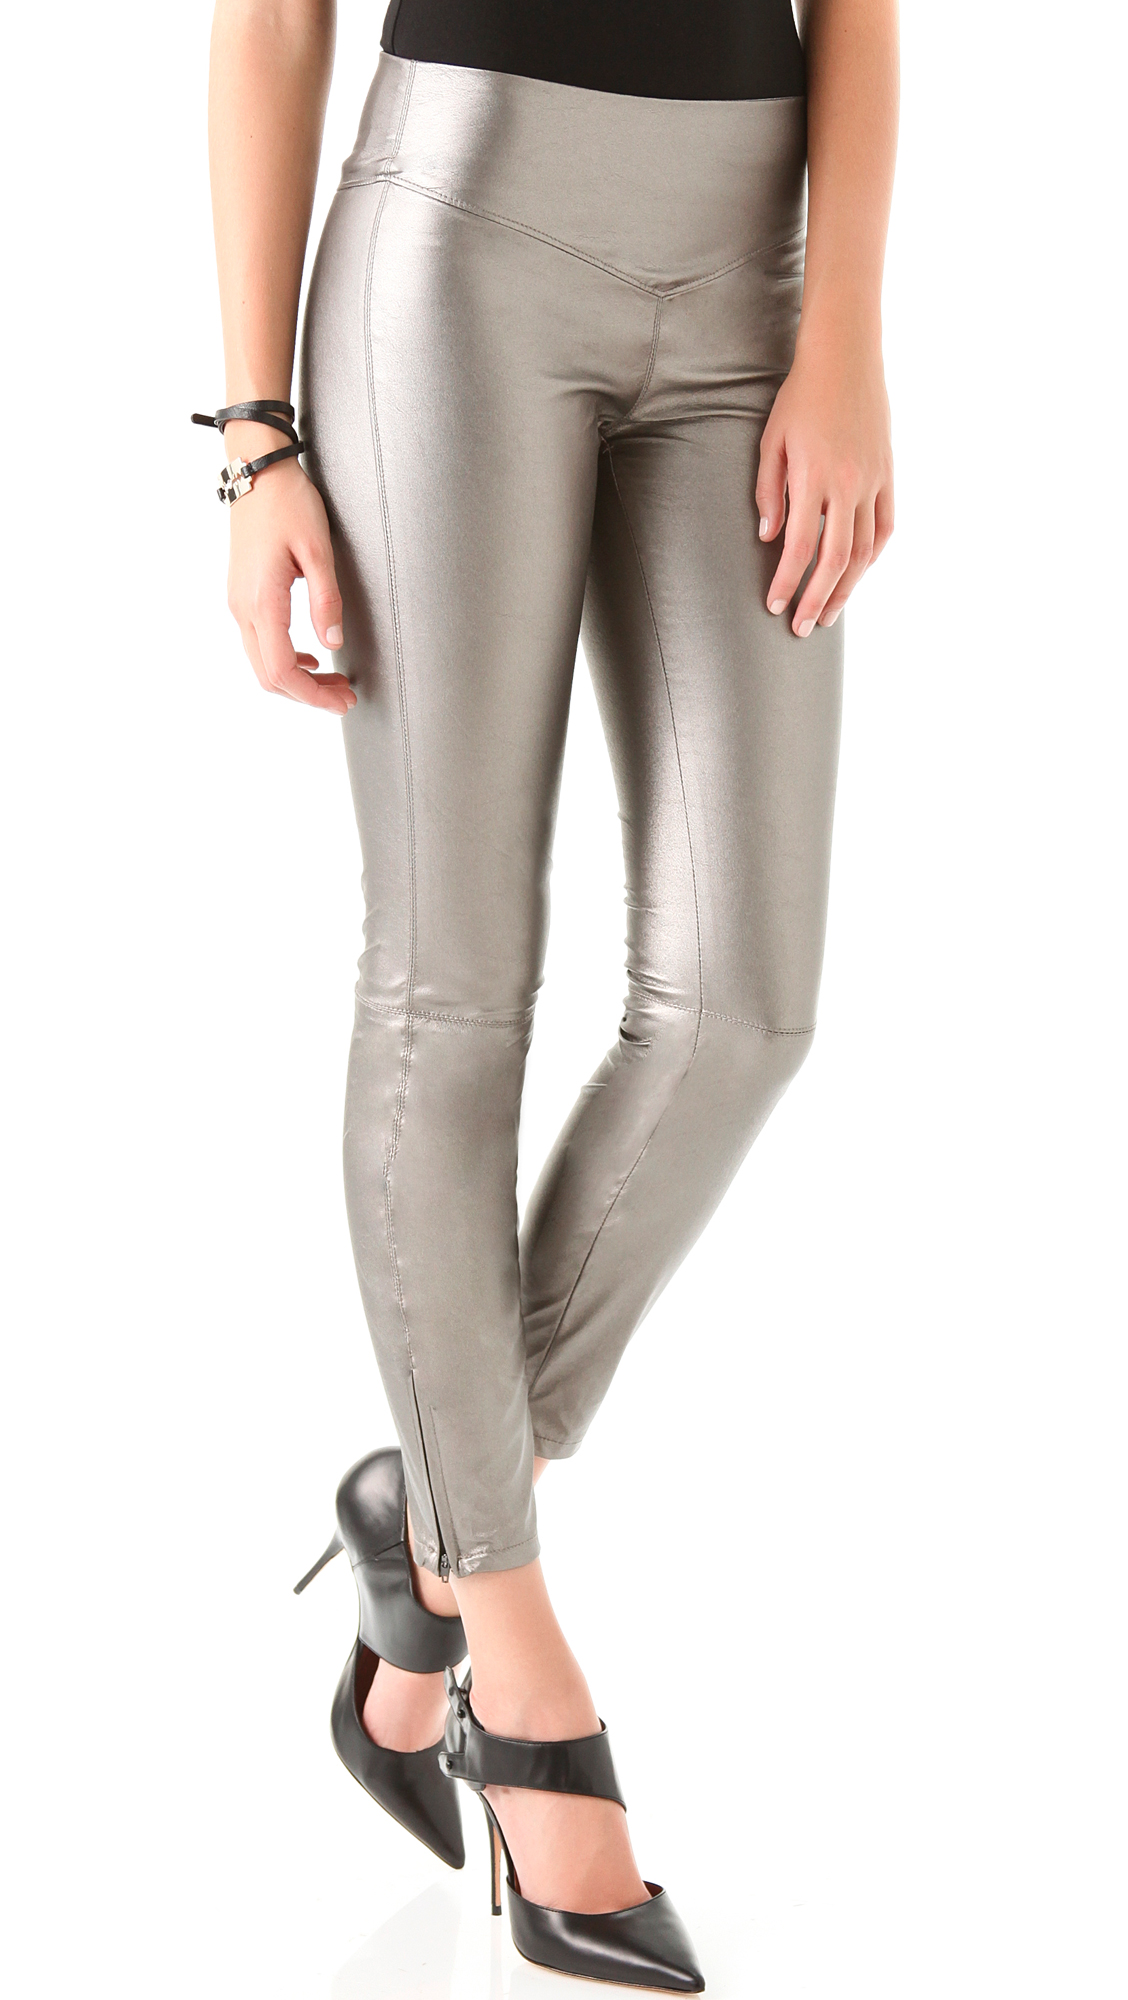 Beige Leather Leggings Hardon Clothes